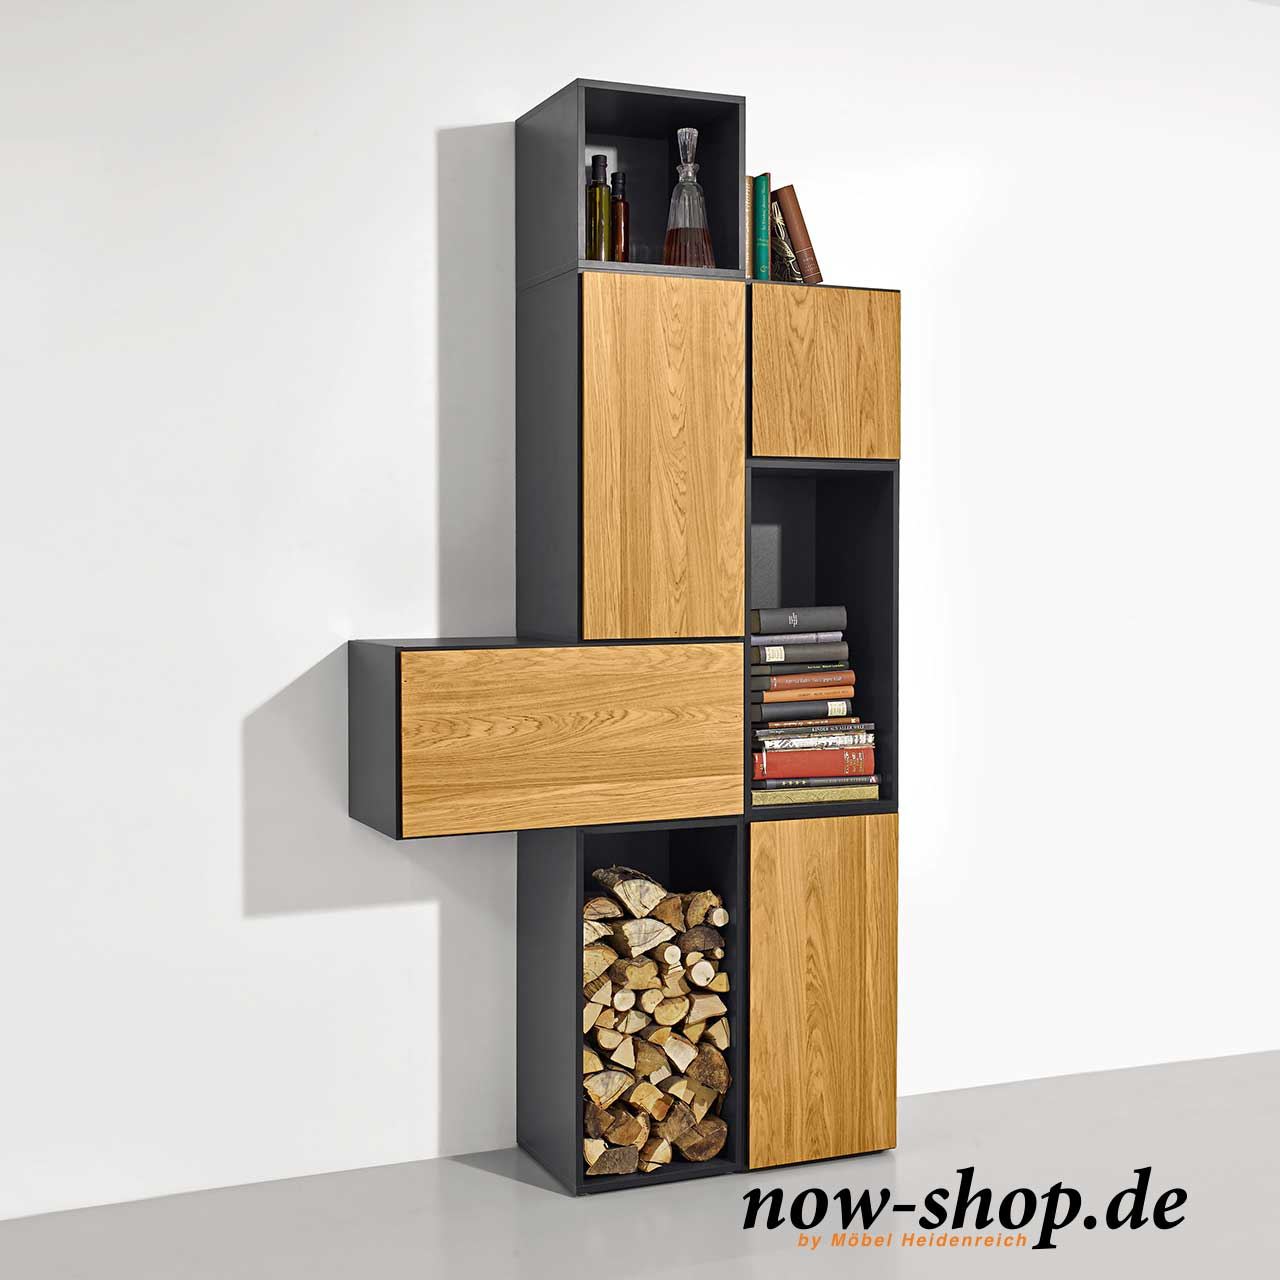 schr nke wohnen now shop. Black Bedroom Furniture Sets. Home Design Ideas